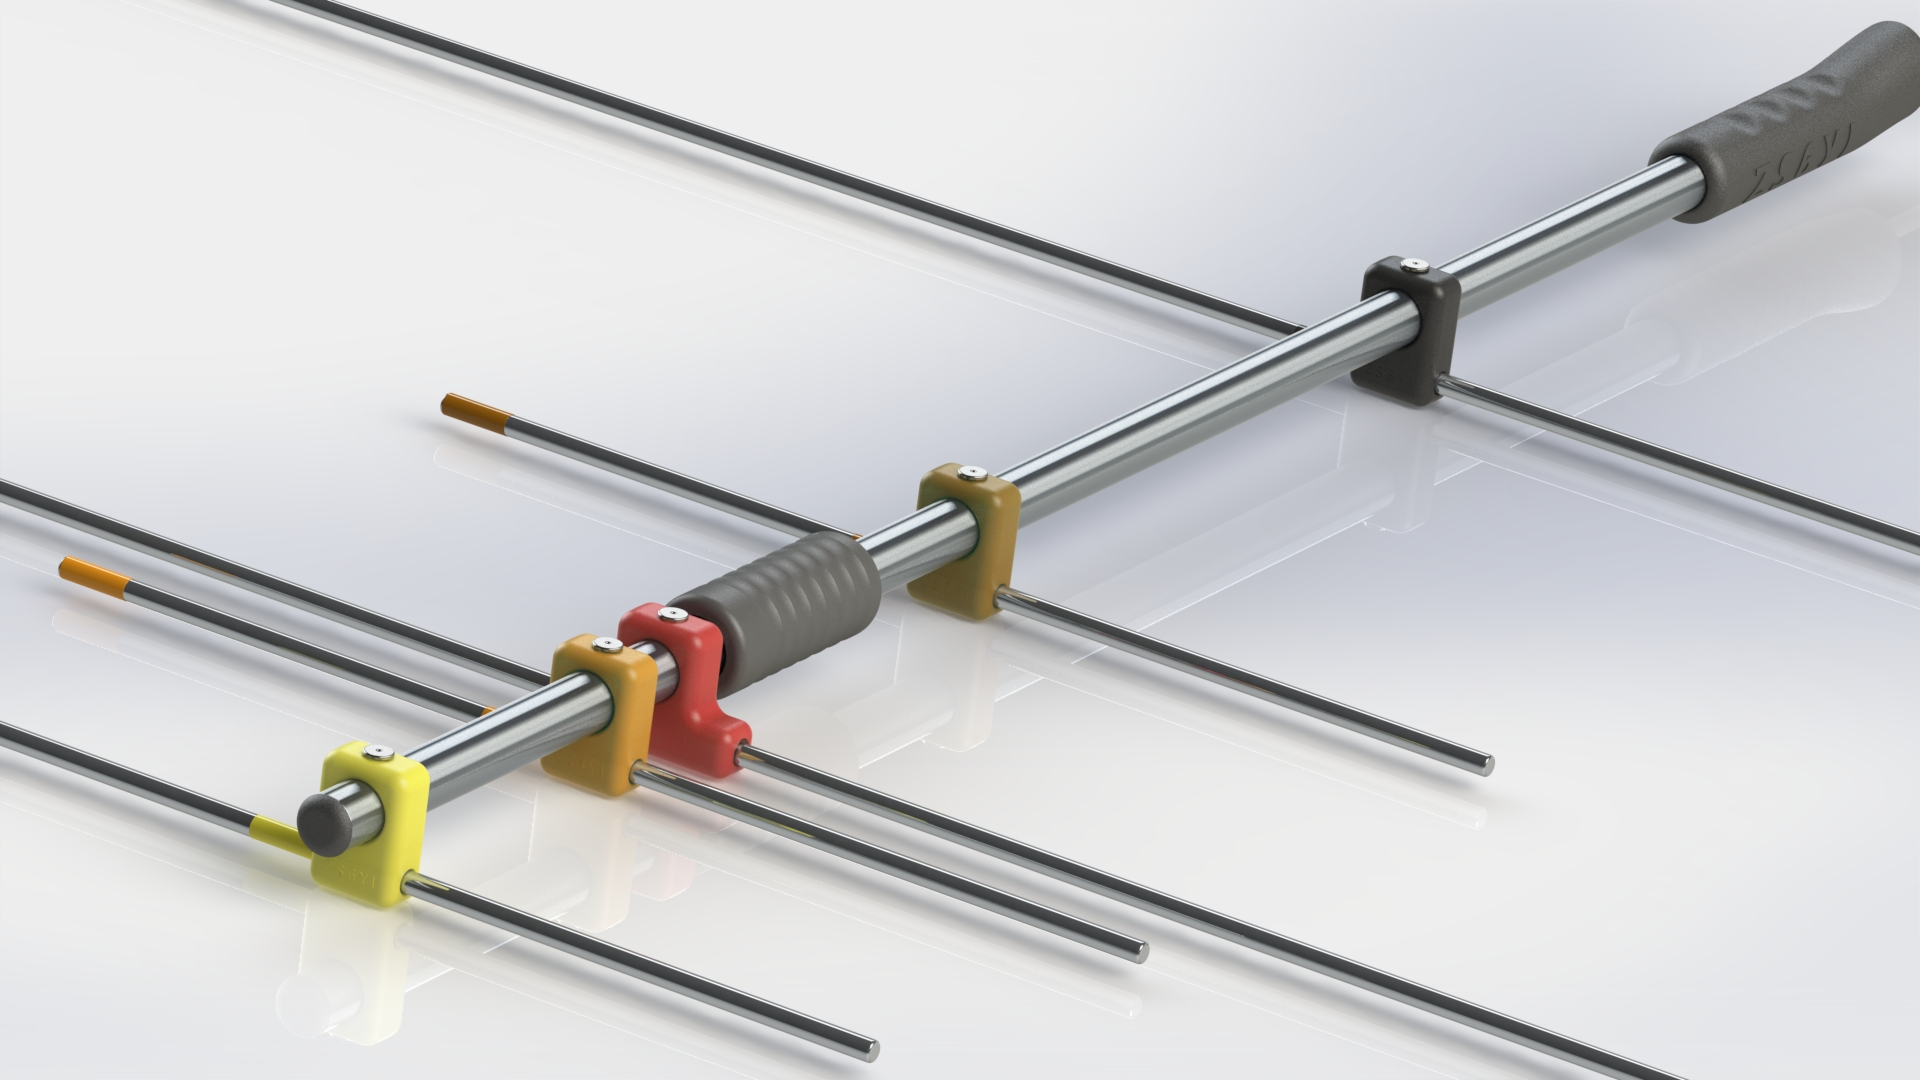 The AMSAT SA 2 m / 70 cm dual-band Yagi antenna is now available